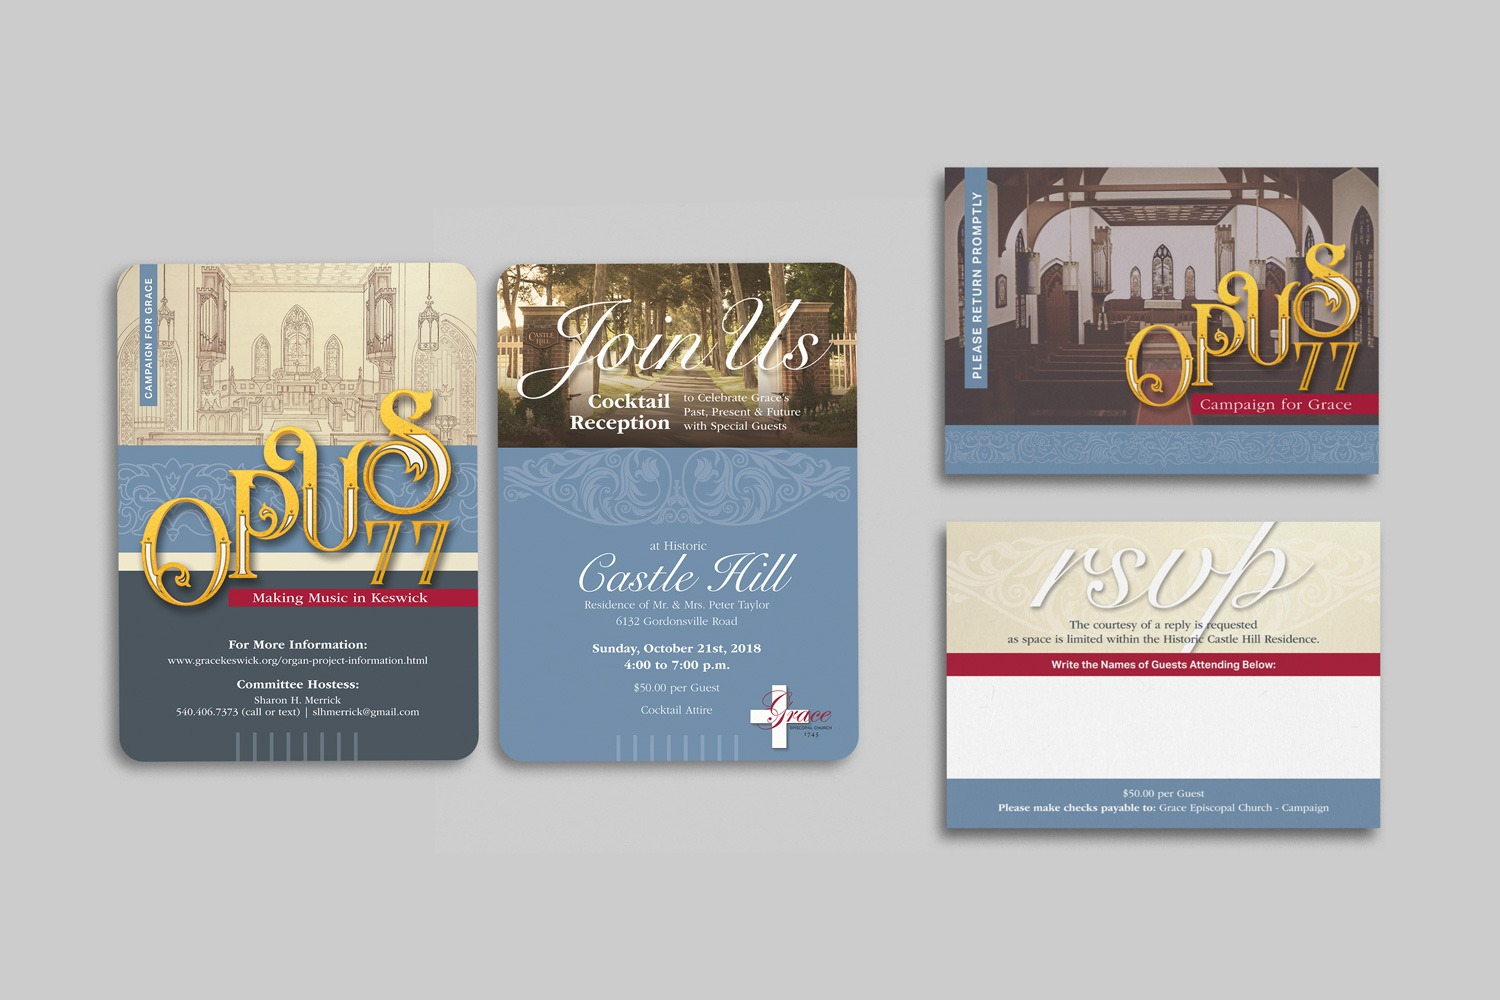 Church capital campaign invitation set ideas and examples by Abstract Union in Lincoln, NE